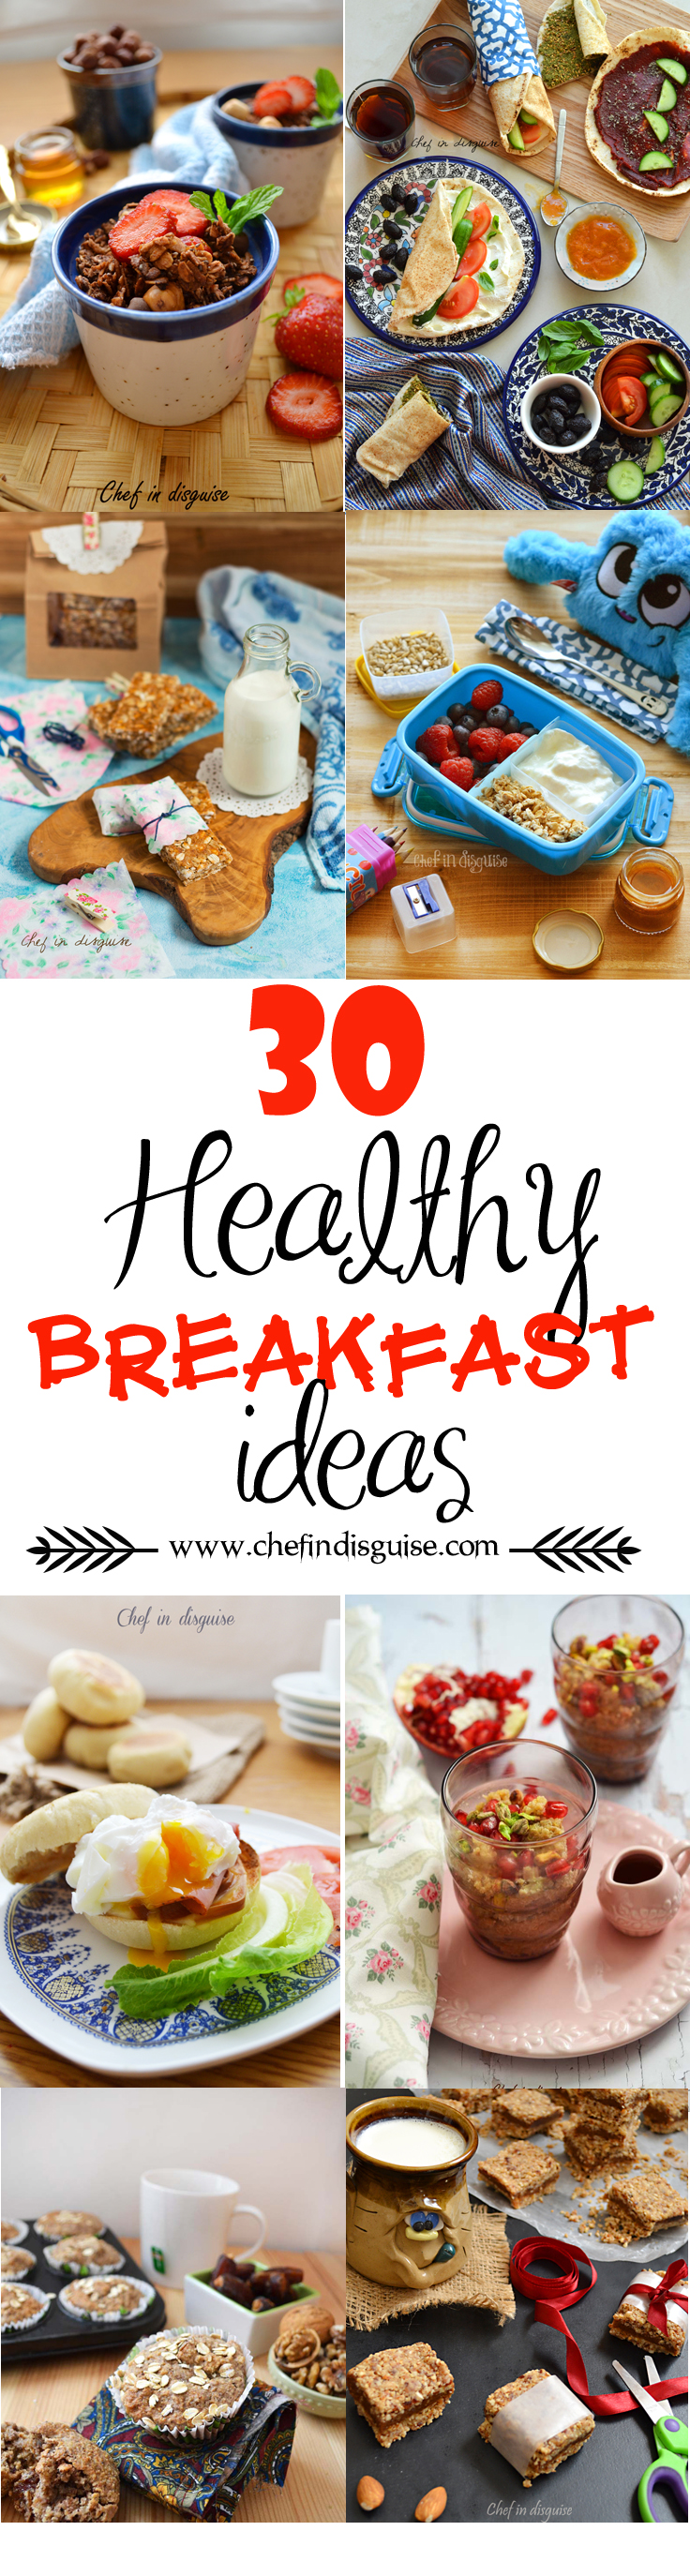 30-healthy-breakfast-ideas-from-chef-in-disguise